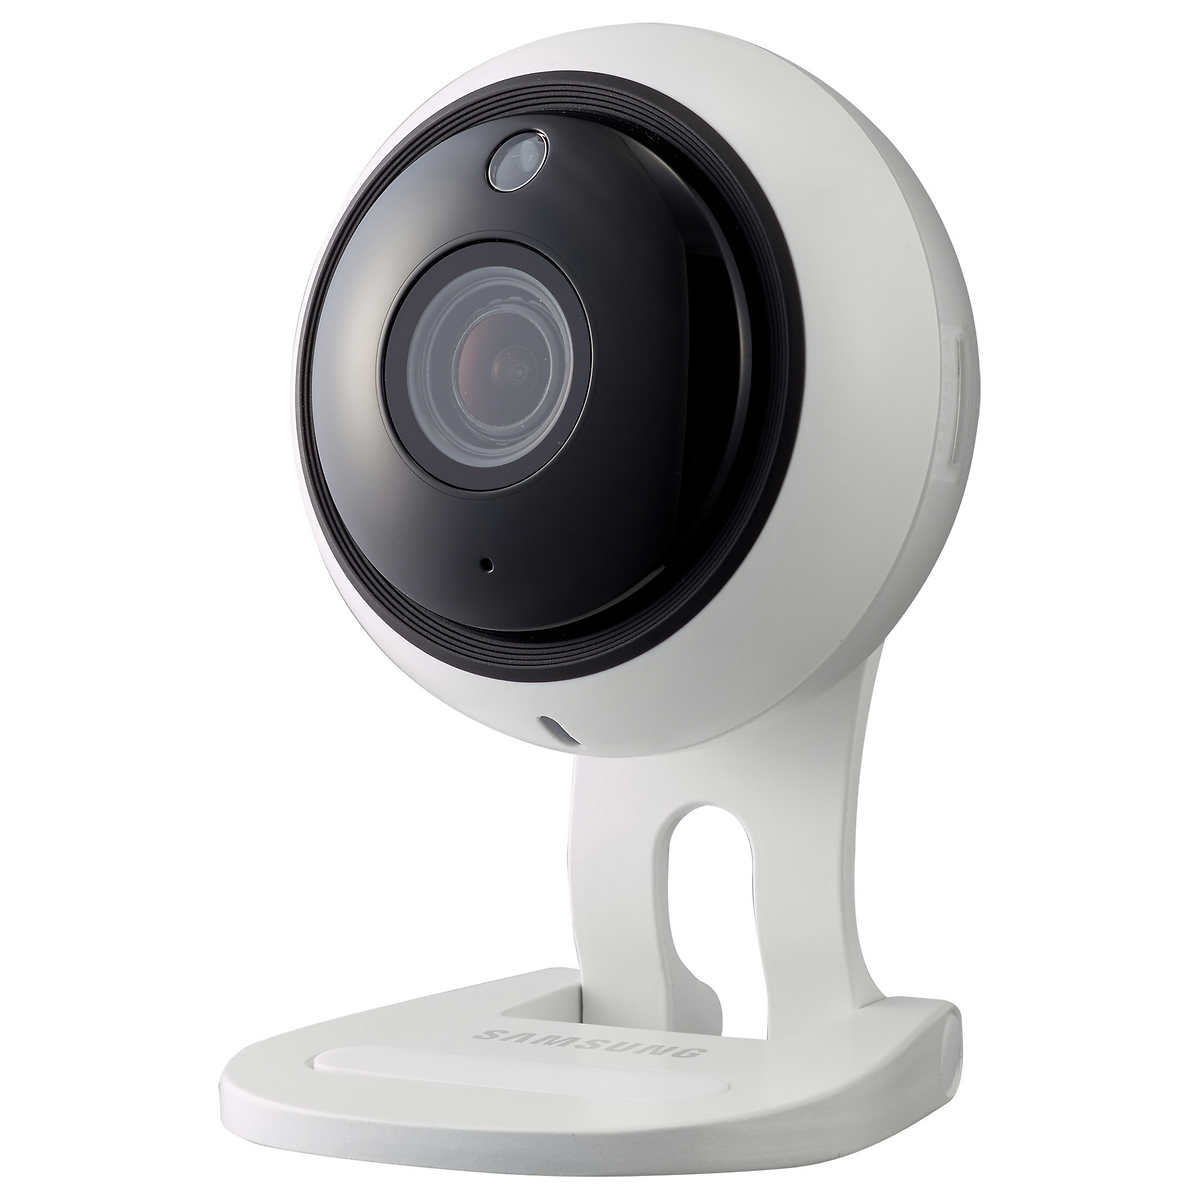 Security System Uniden Wireless Security System Costco